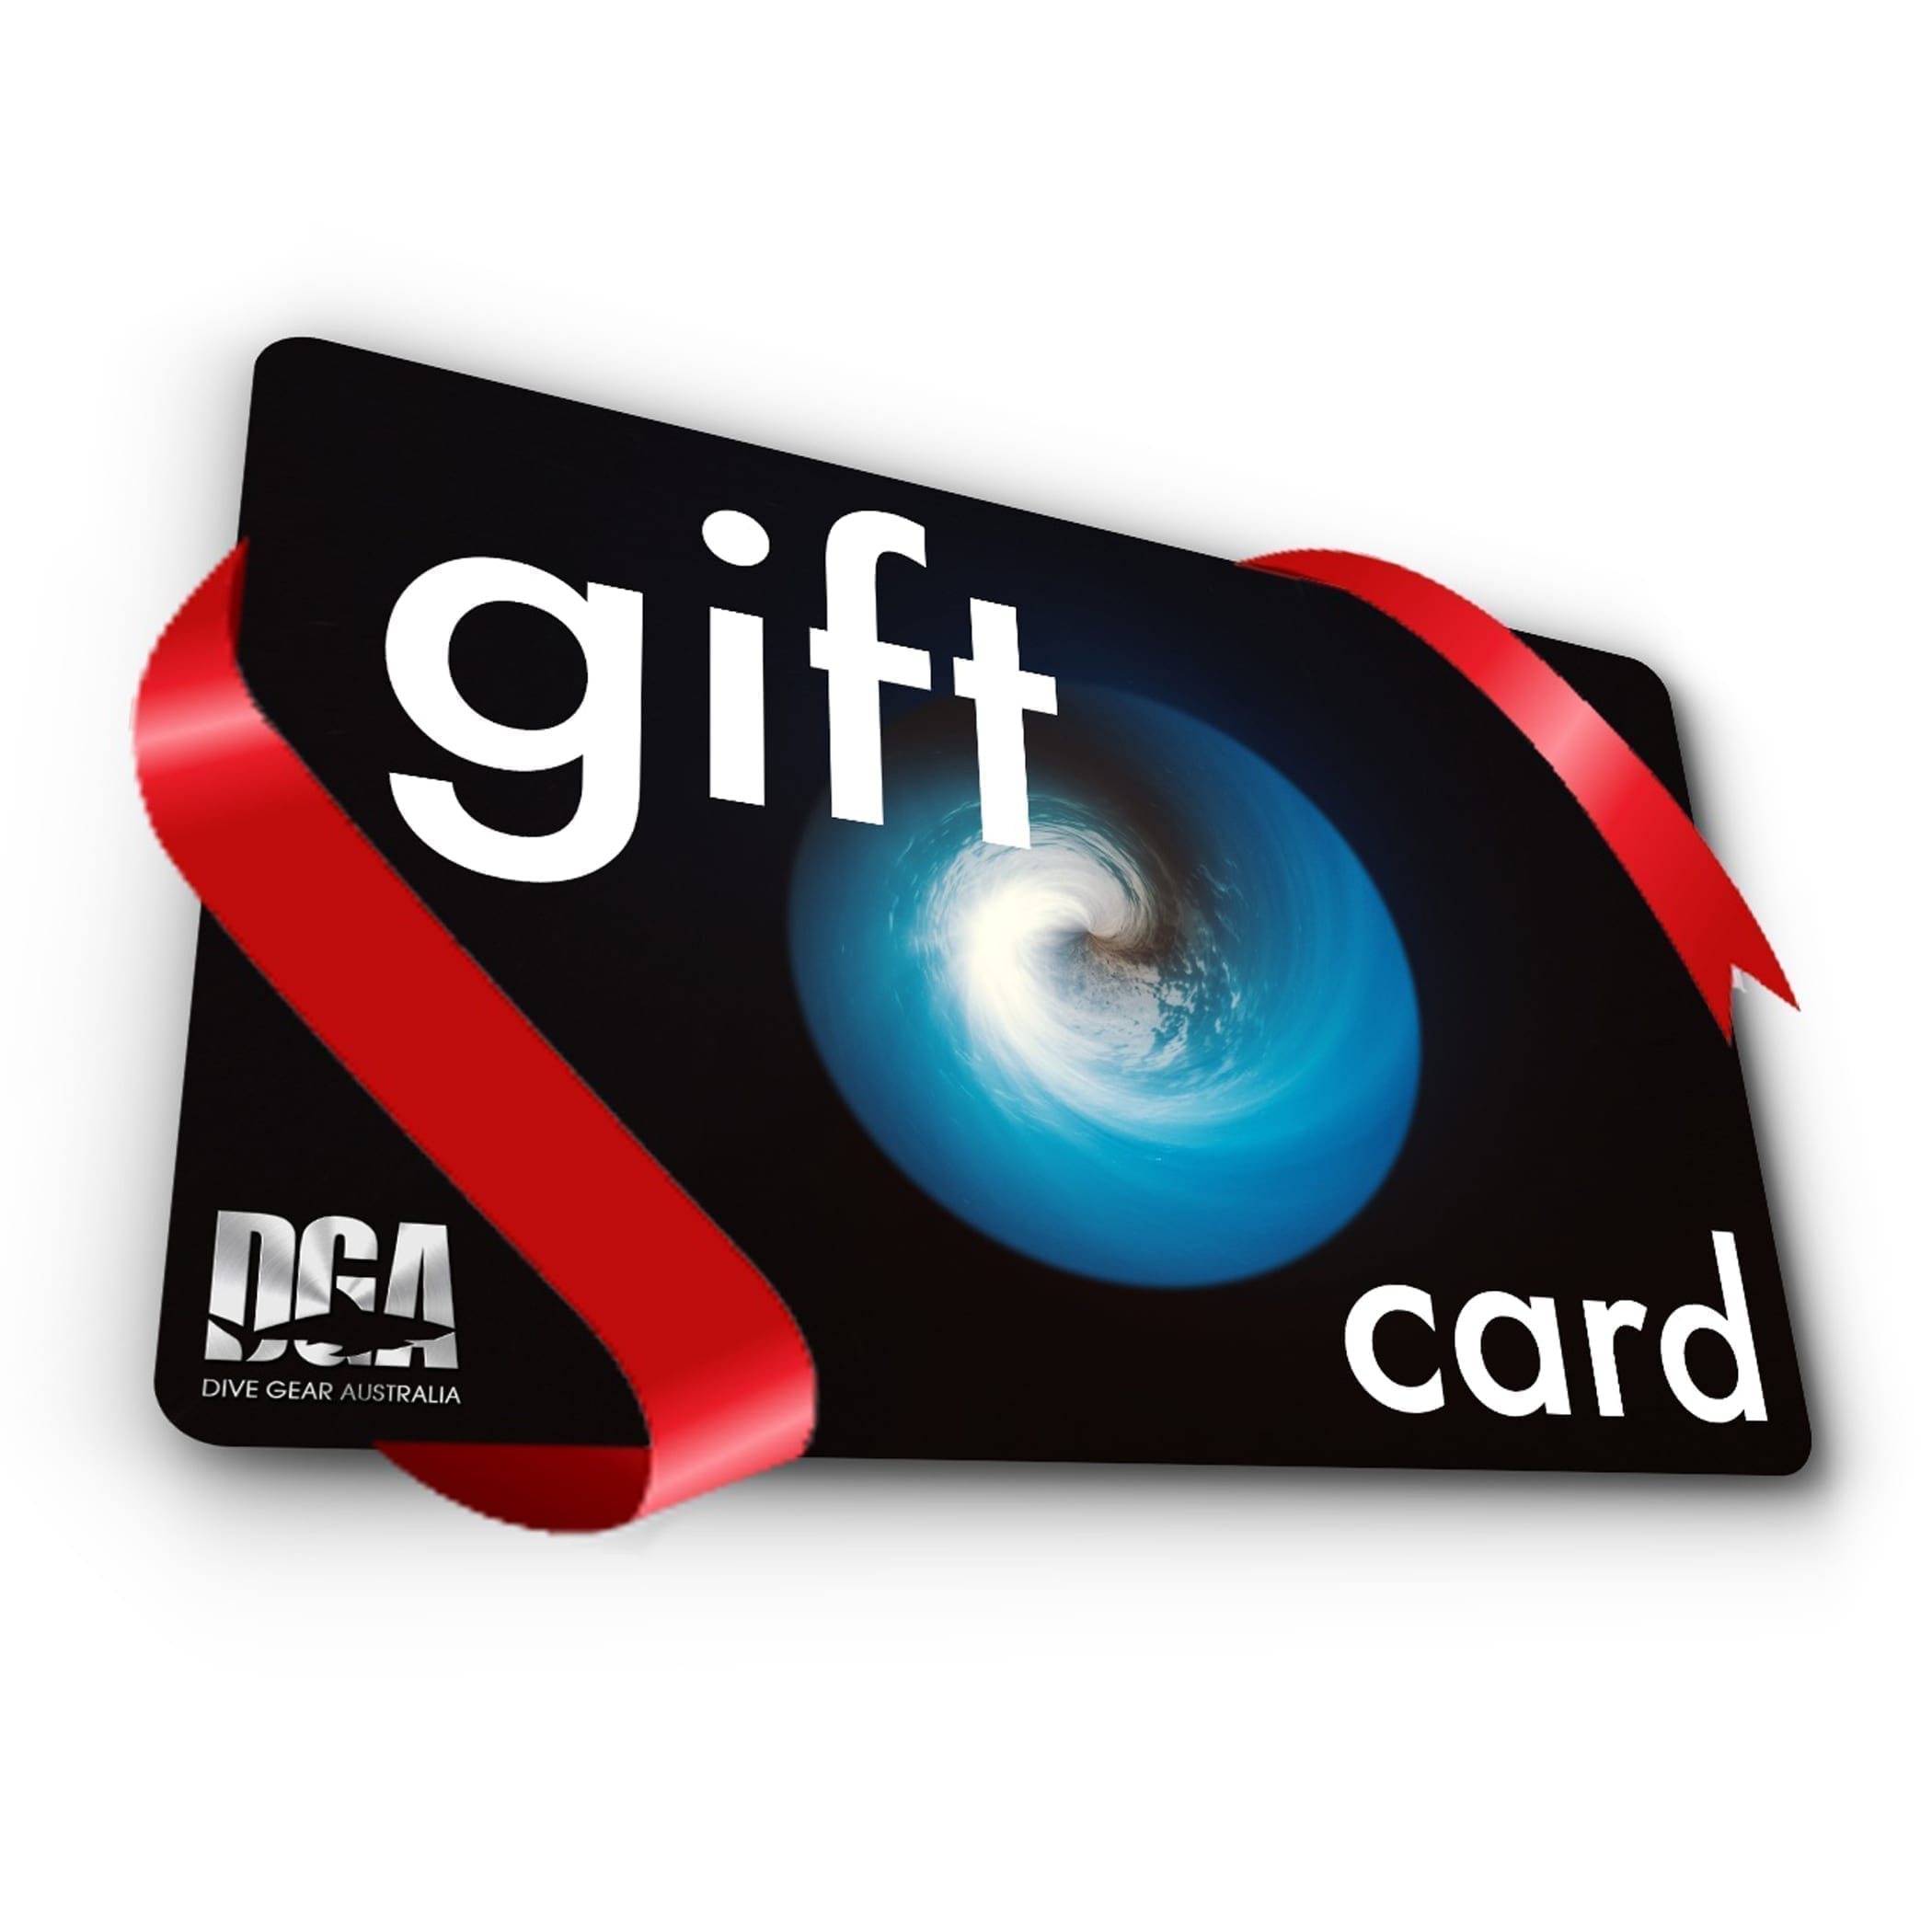 Gift Card from Dive Gear Australia